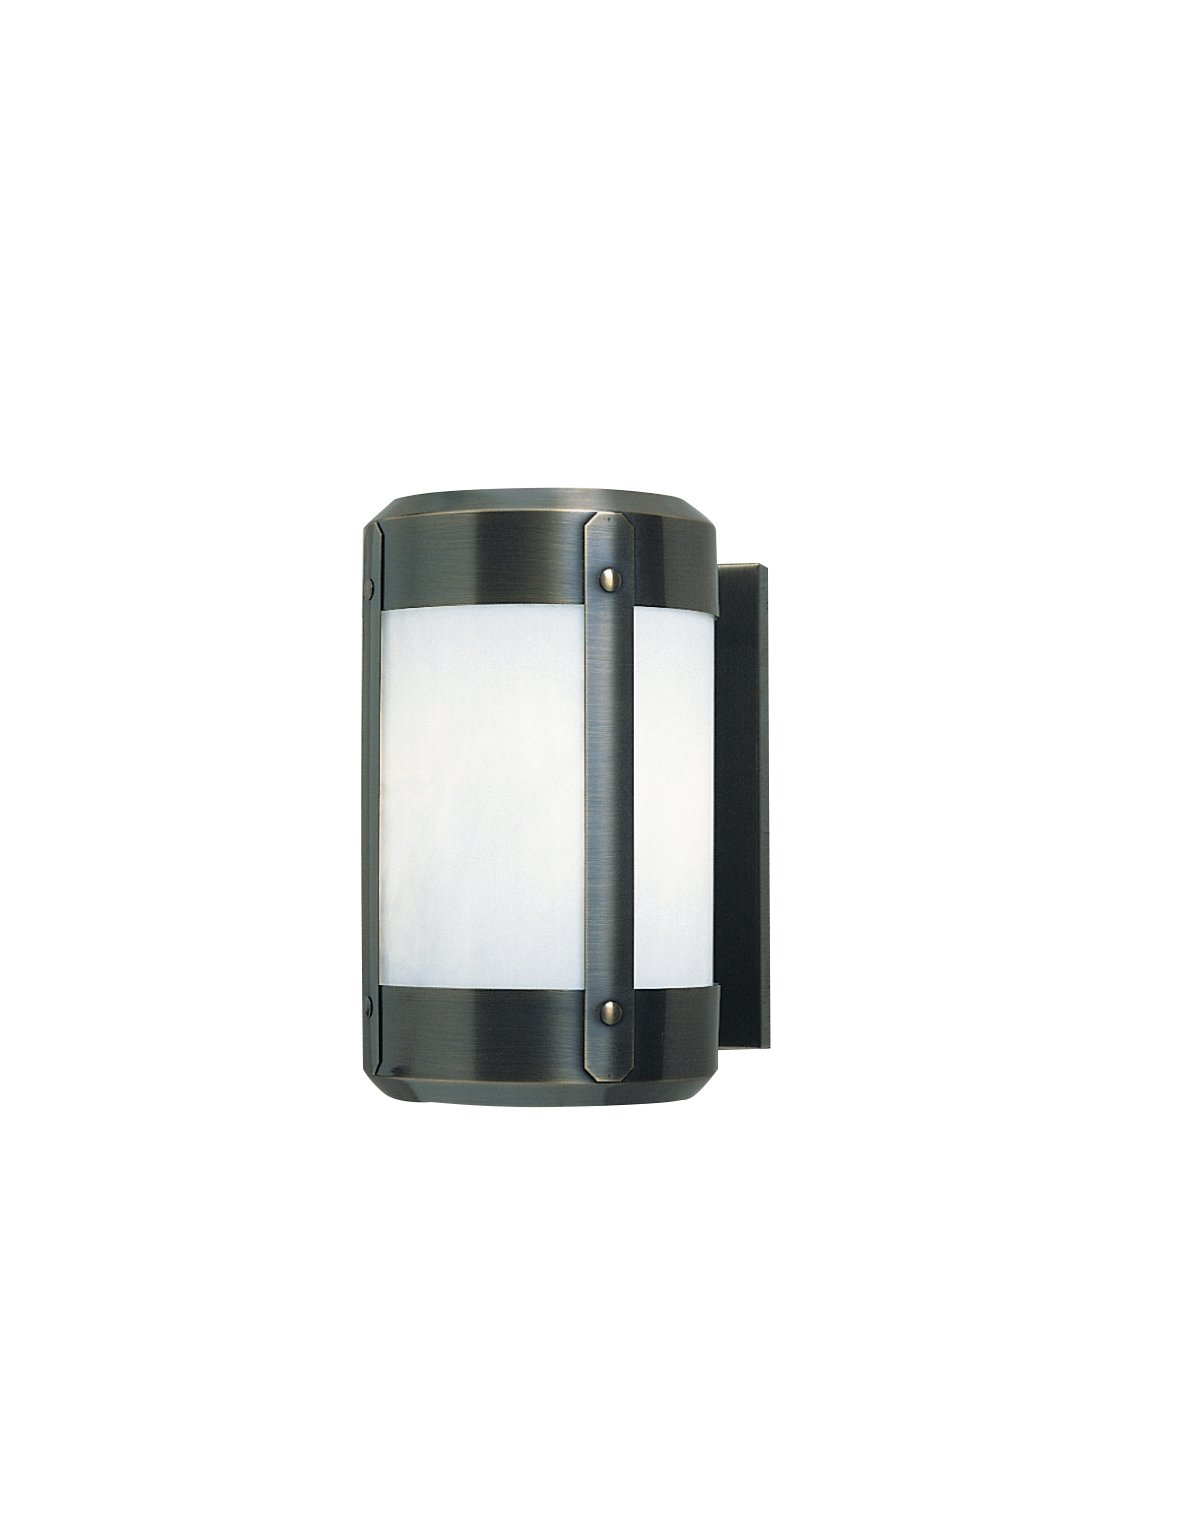 Arroyo Craftsman Berkeley Wall Sconce with Roof Satin Black Metal Finish, White Opalescent Glass, 8'' by Arroyo Craftsman